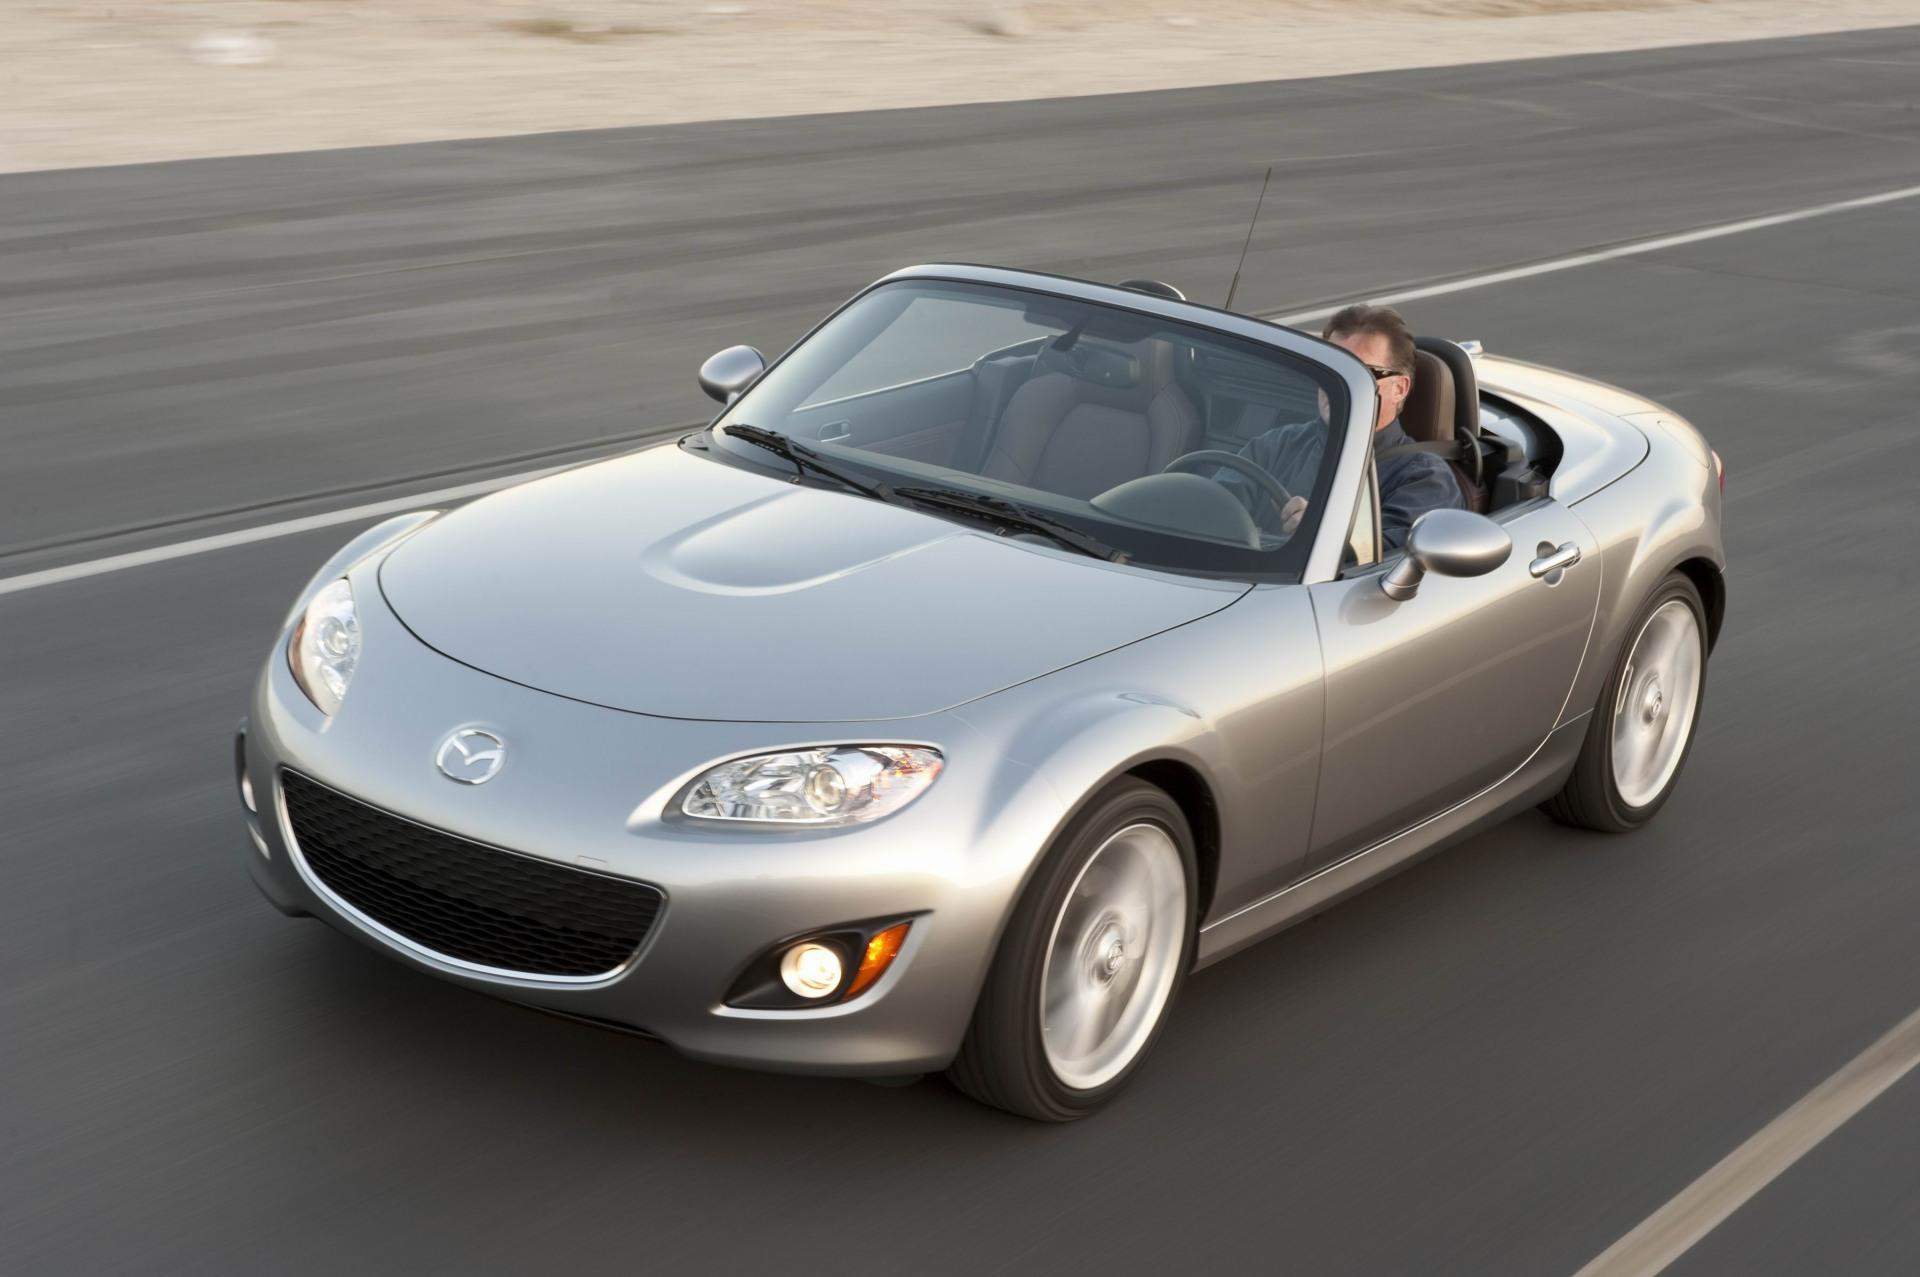 2010 mazda mx 5 miata news and information. Black Bedroom Furniture Sets. Home Design Ideas